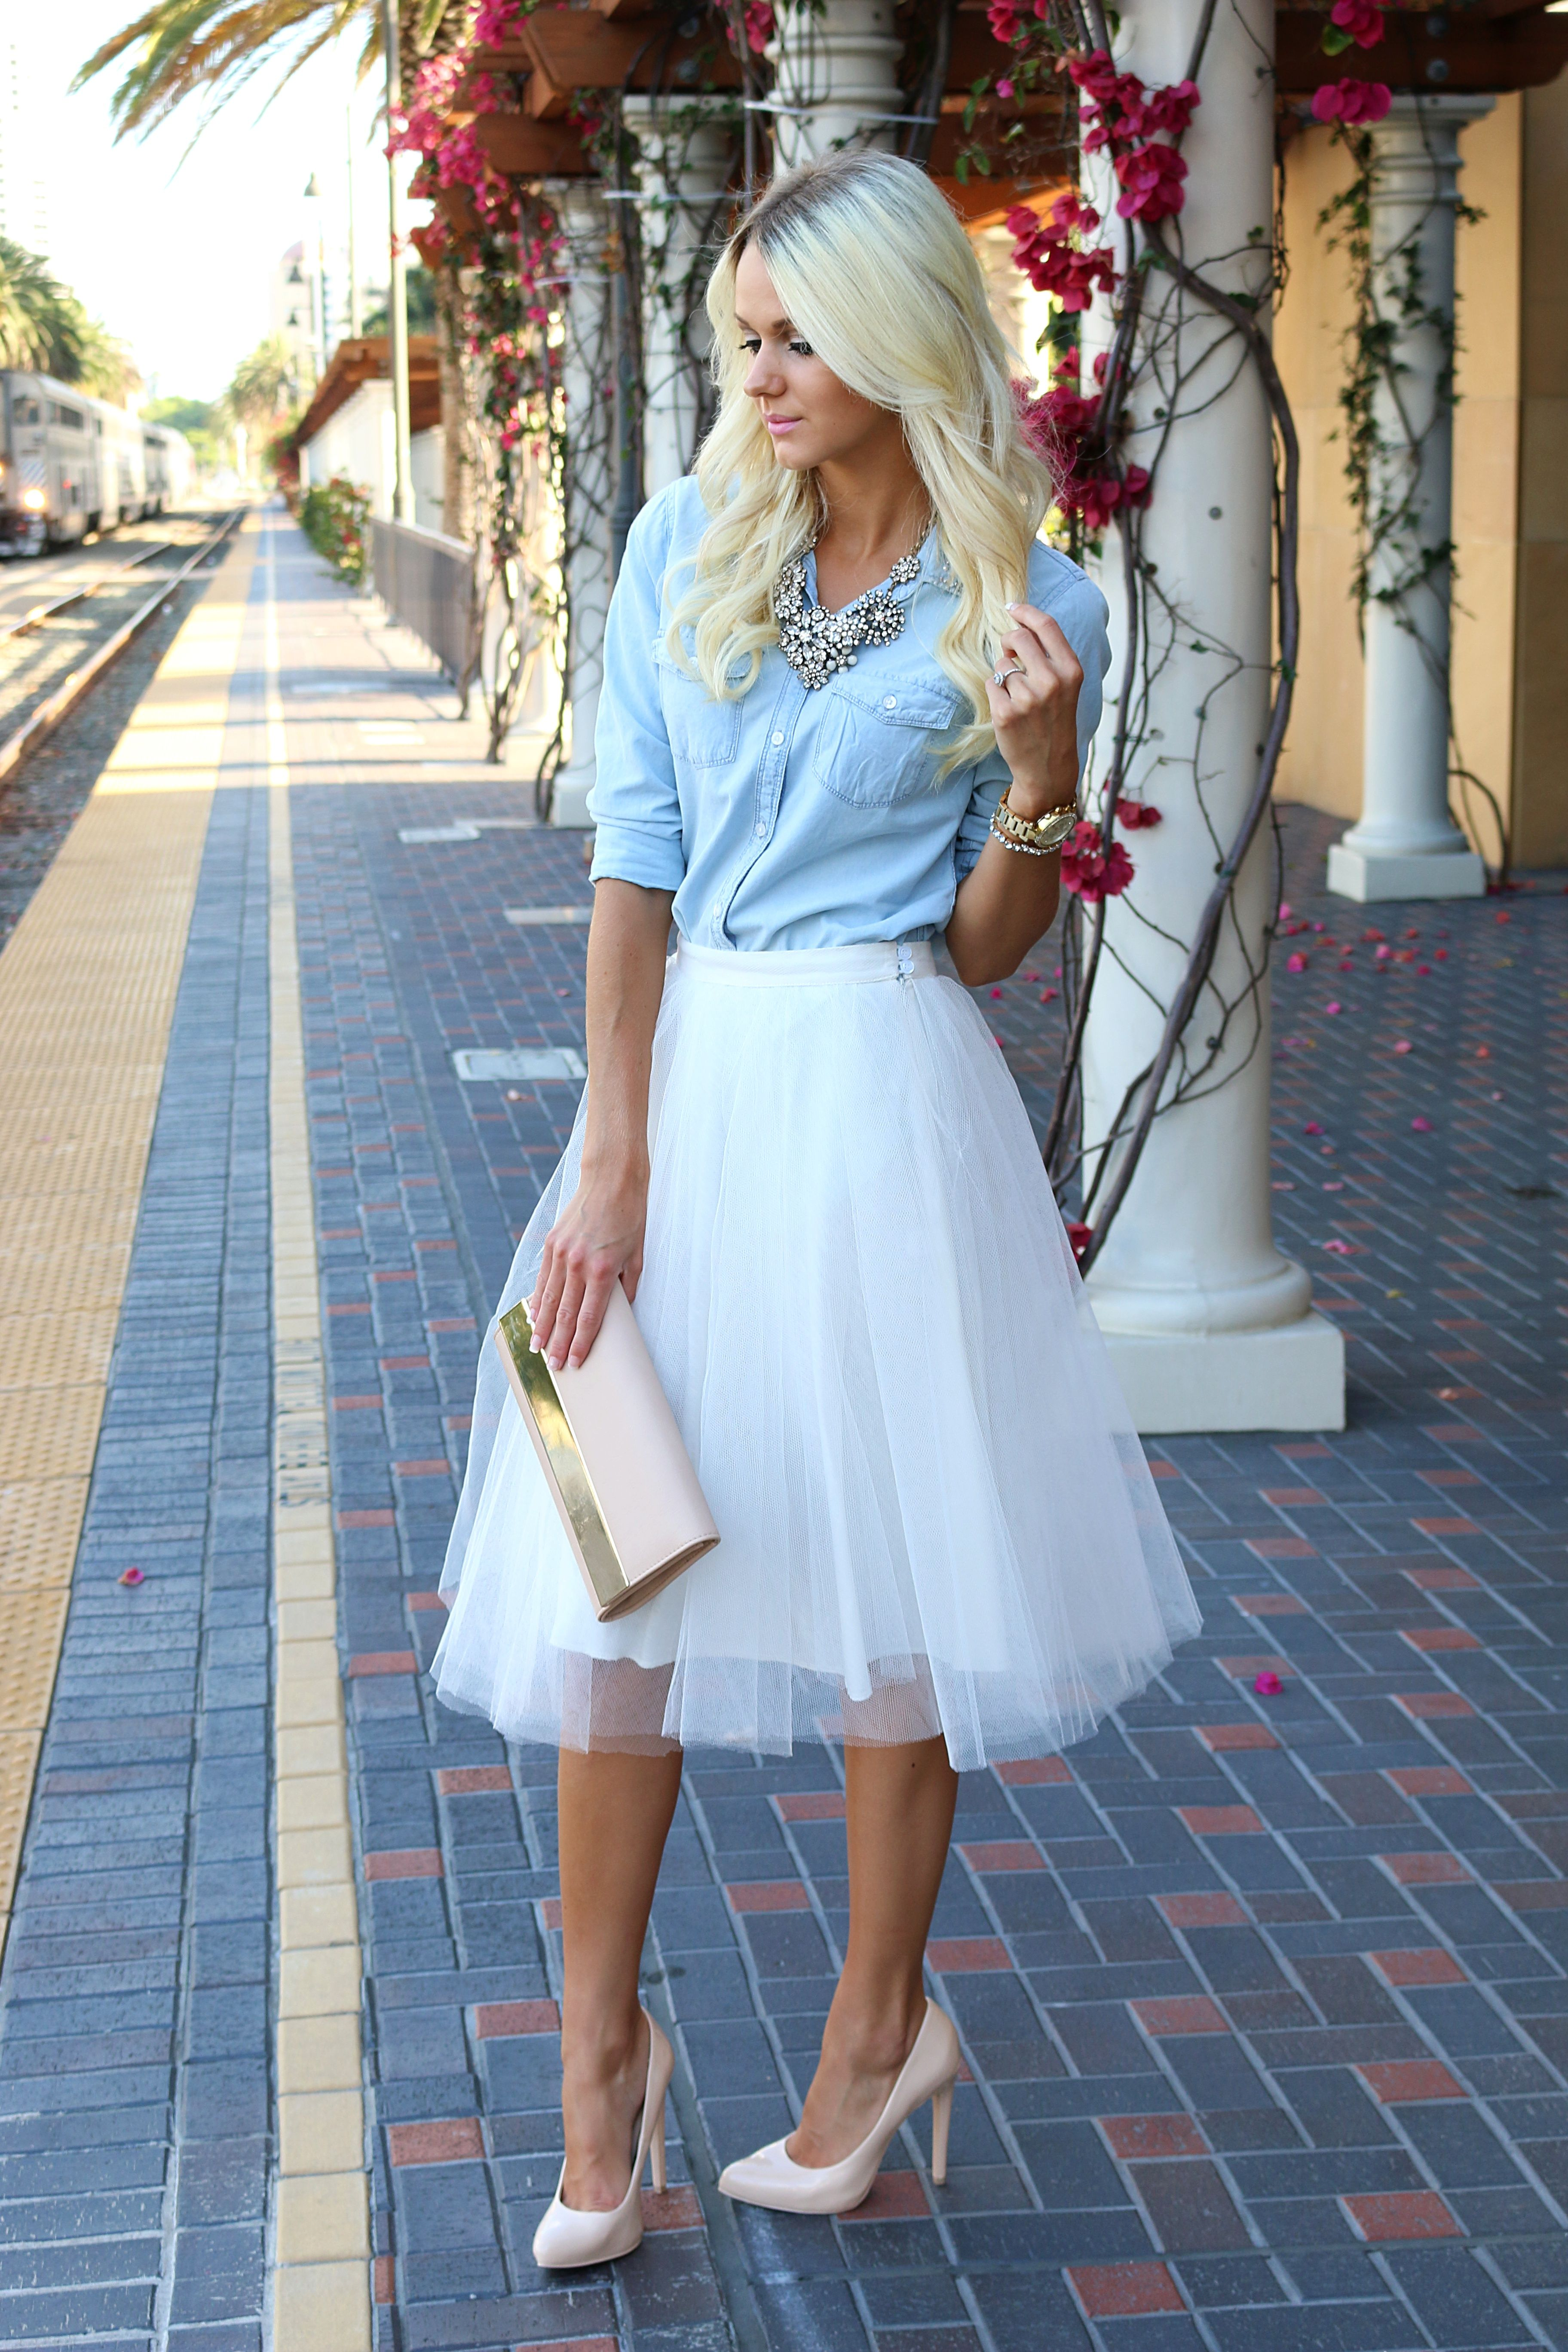 0c4d9f7d81 tulle skirt | denim shirt | Fashion blogger | Fashion | Fashion ...